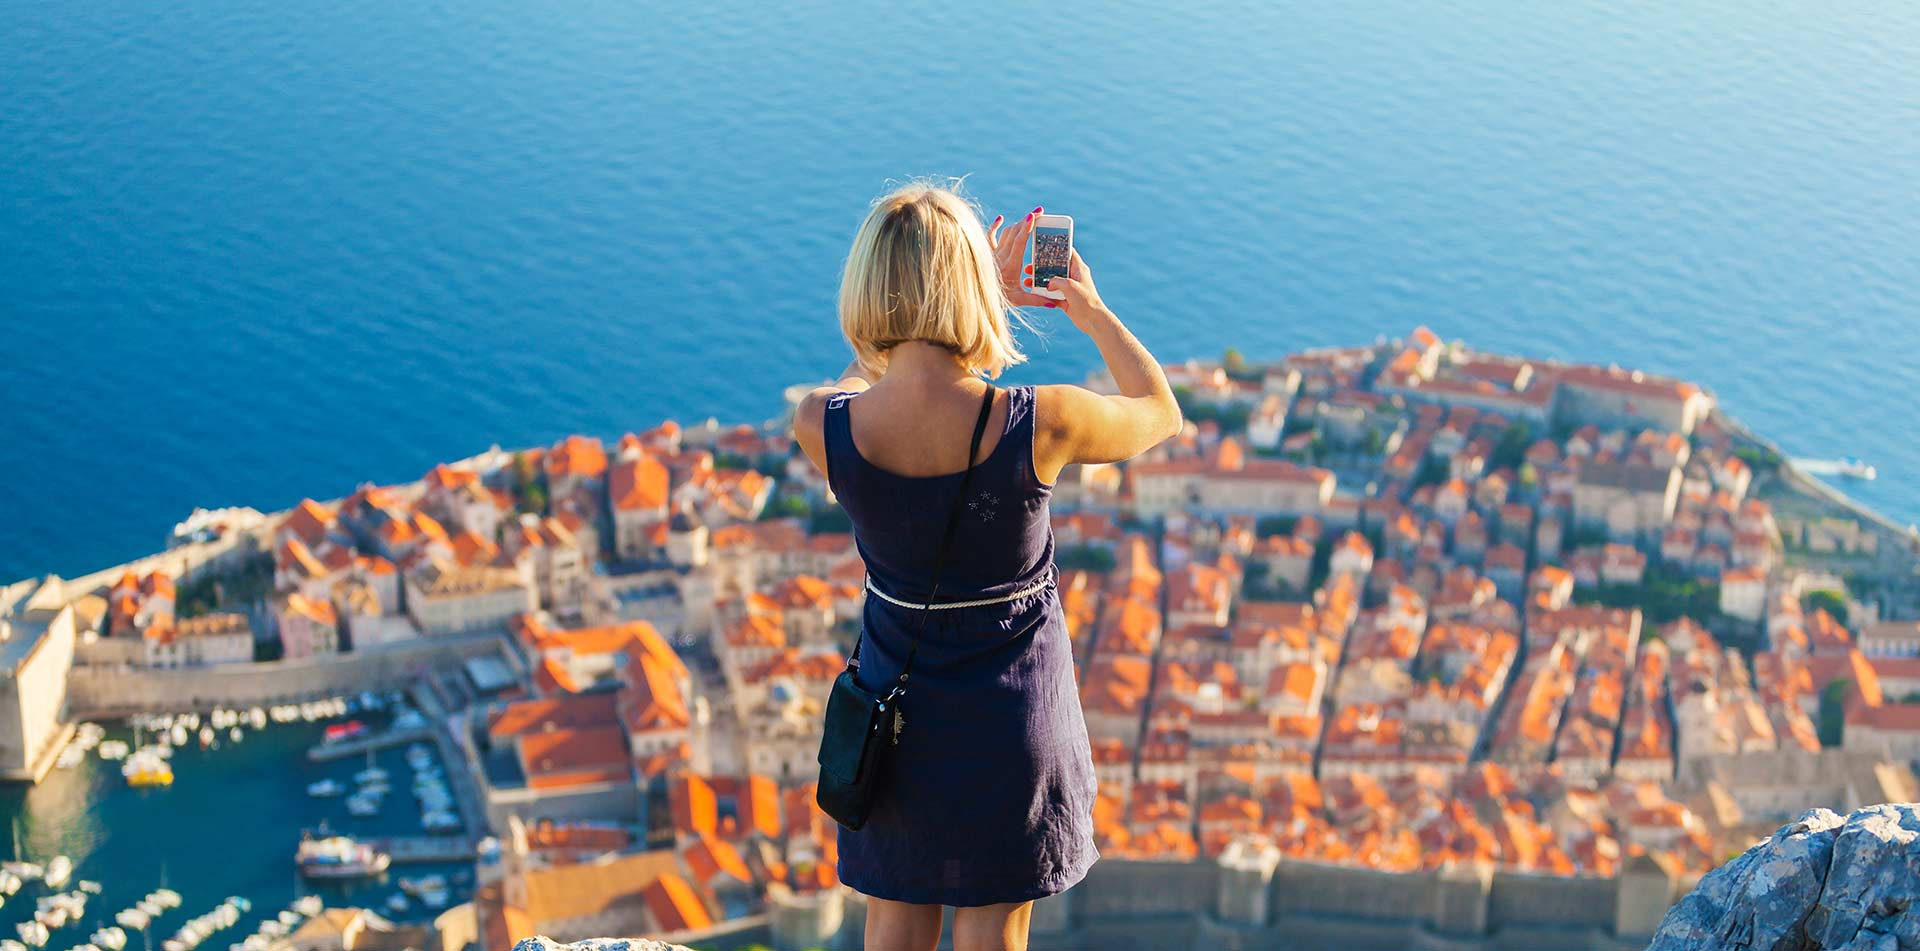 Europe Croatia Dubrovnik woman taking photo scenic Adriatic historic old town red tile roofs - luxury vacation destinations